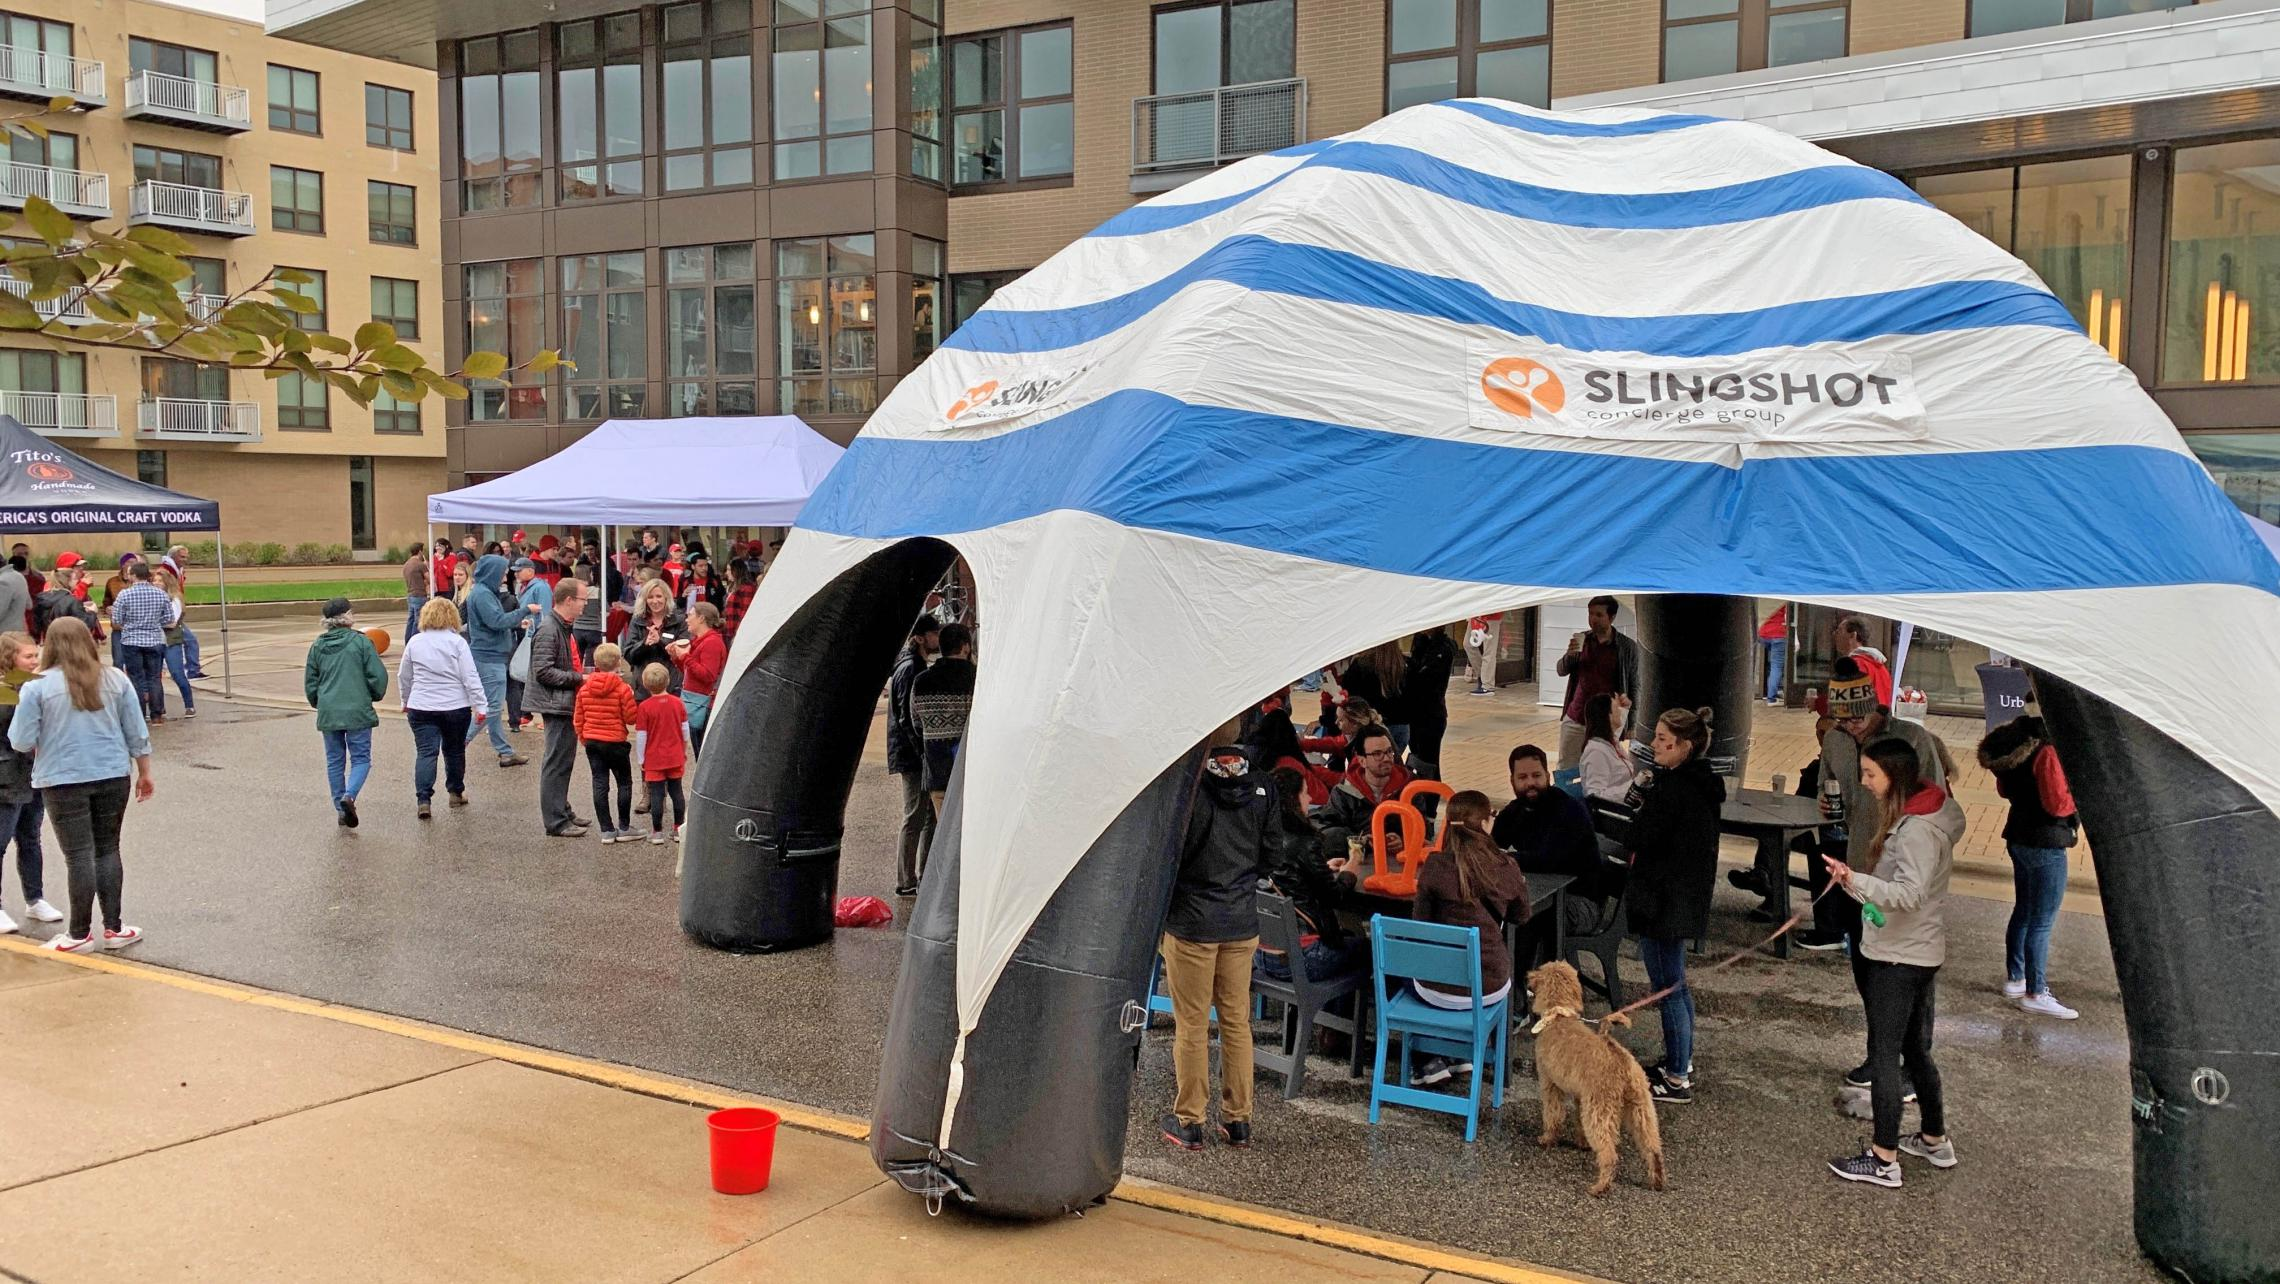 Residents enjoying ULI's second annual tailgate under a tent provided by S-Concierge